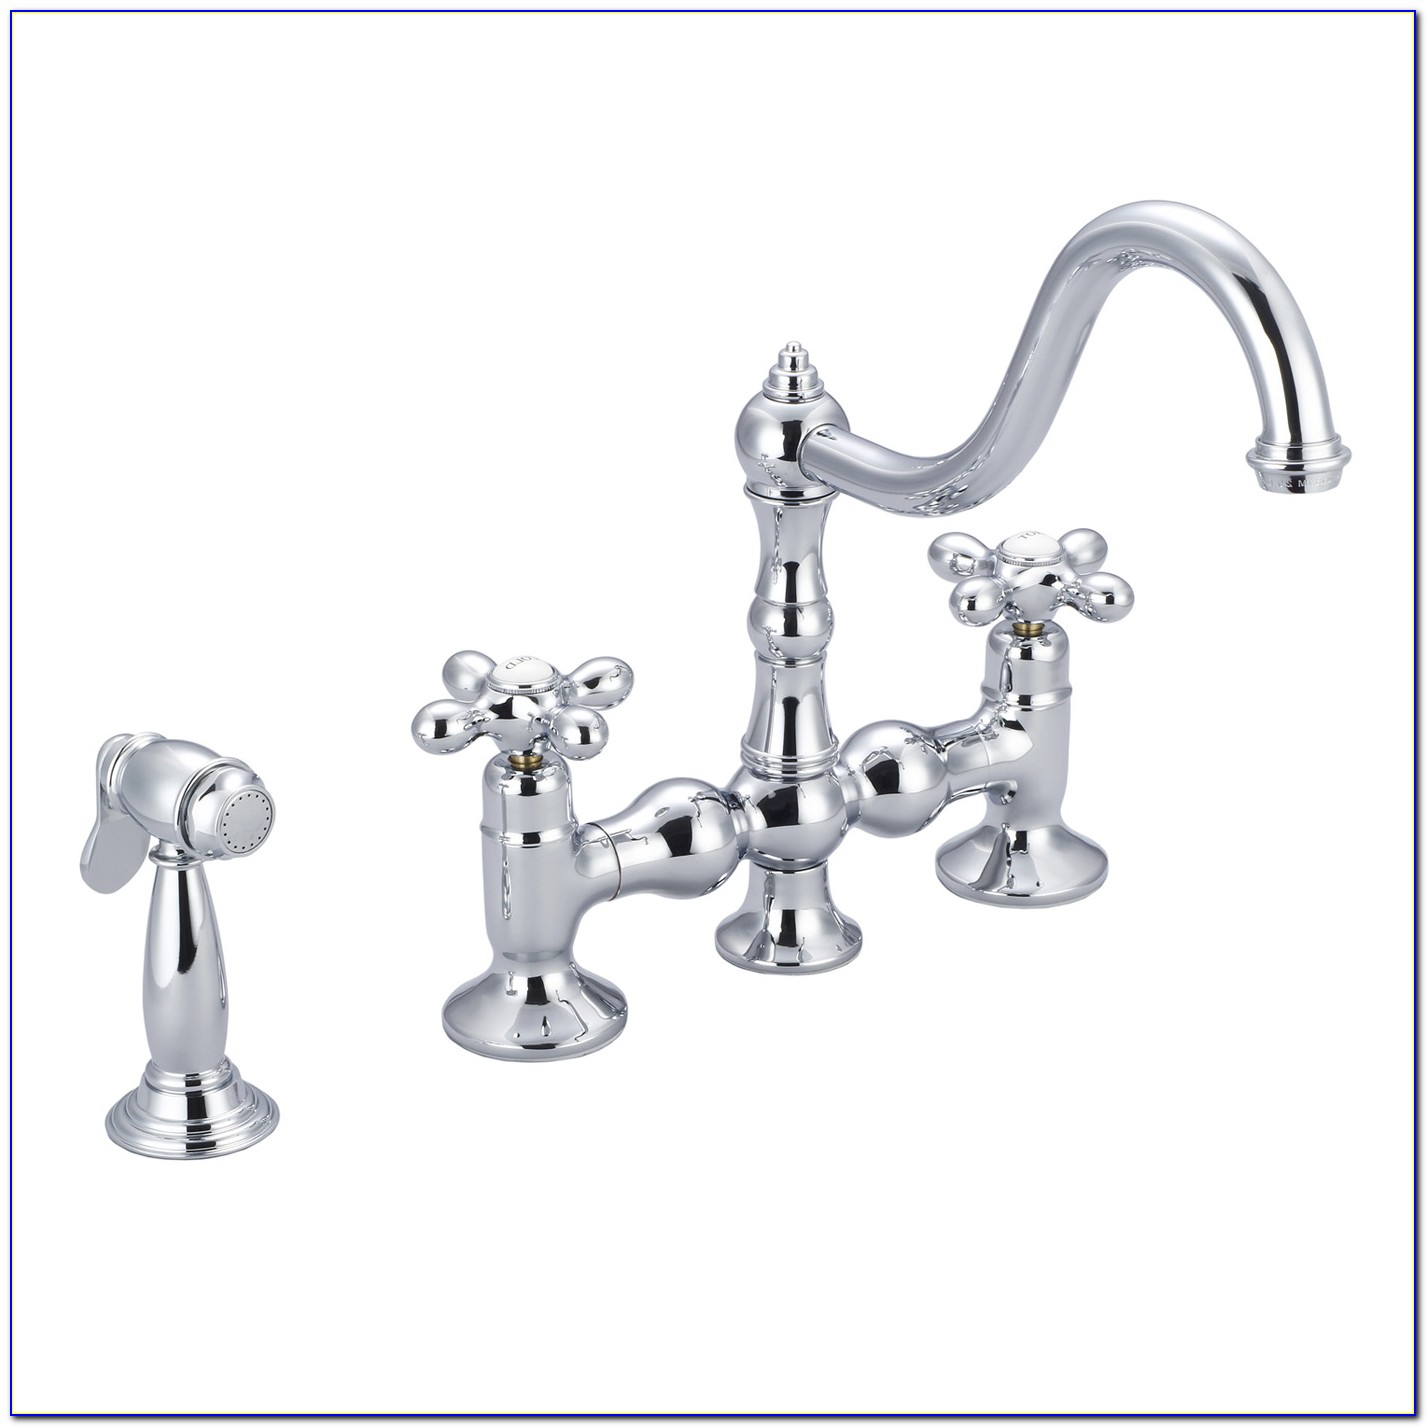 Ponticello Bridge Kitchen Faucet With Side Spray